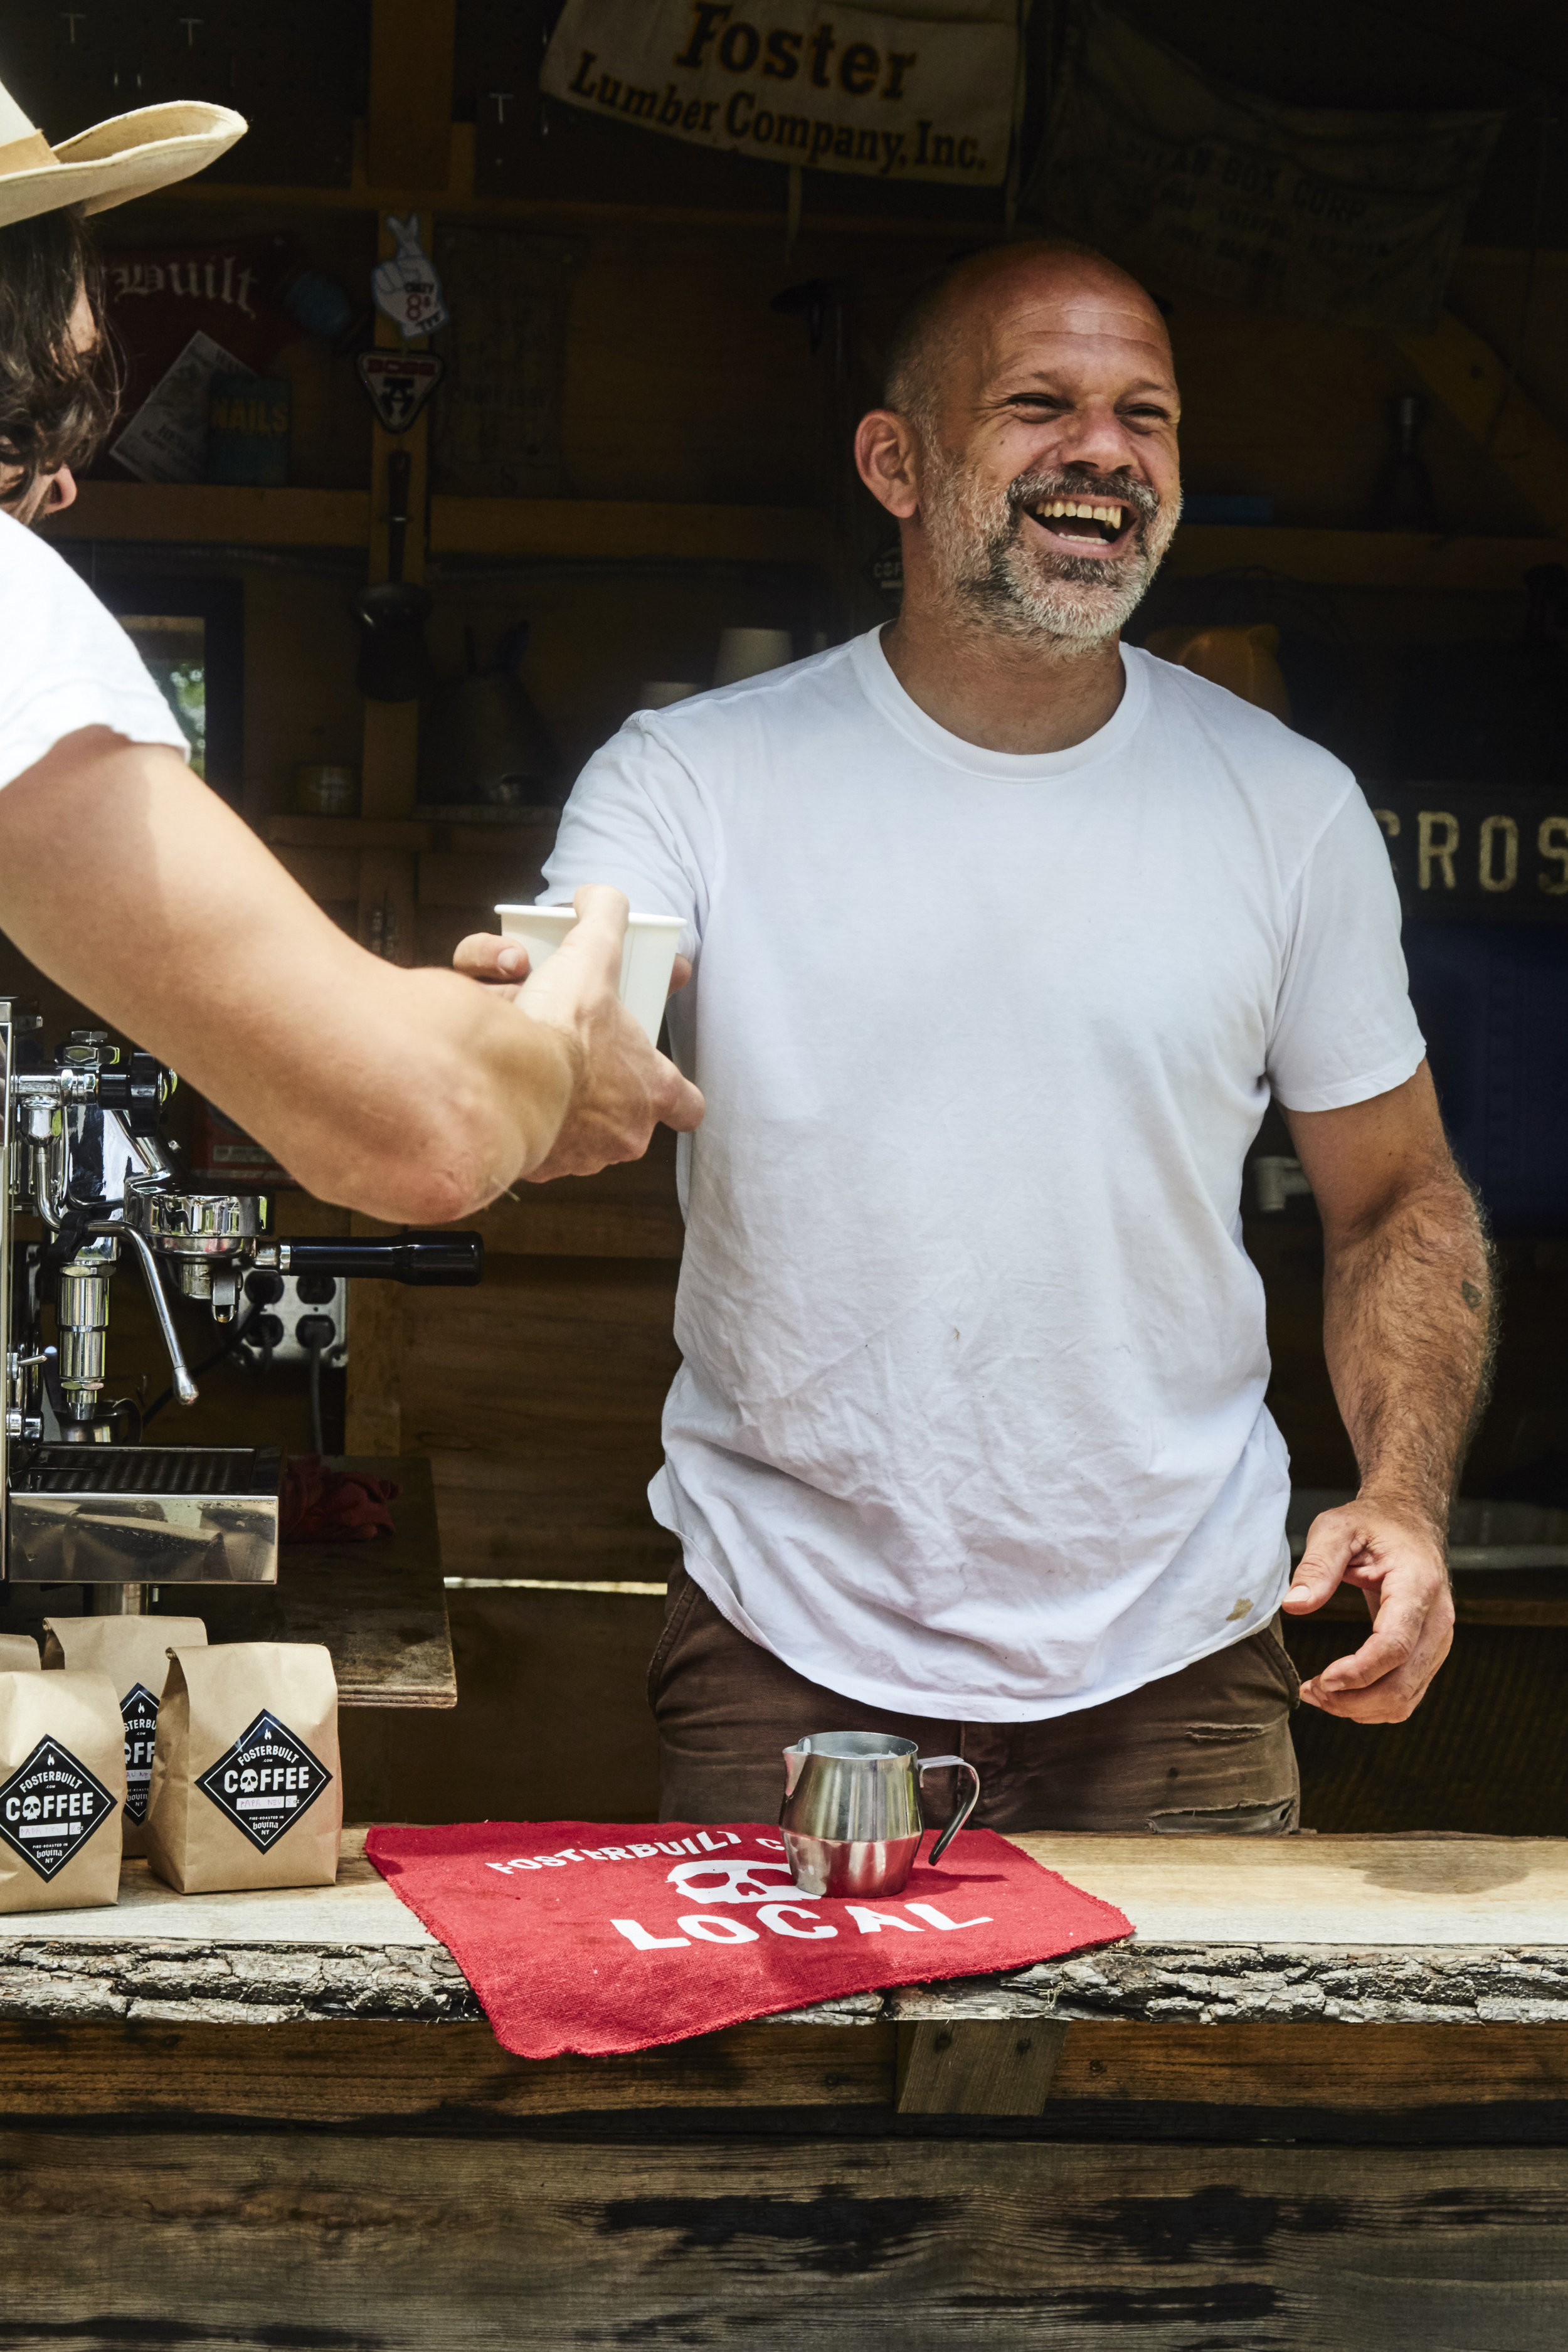 Mark Foster. Founder, FosterBuilt Coffee.